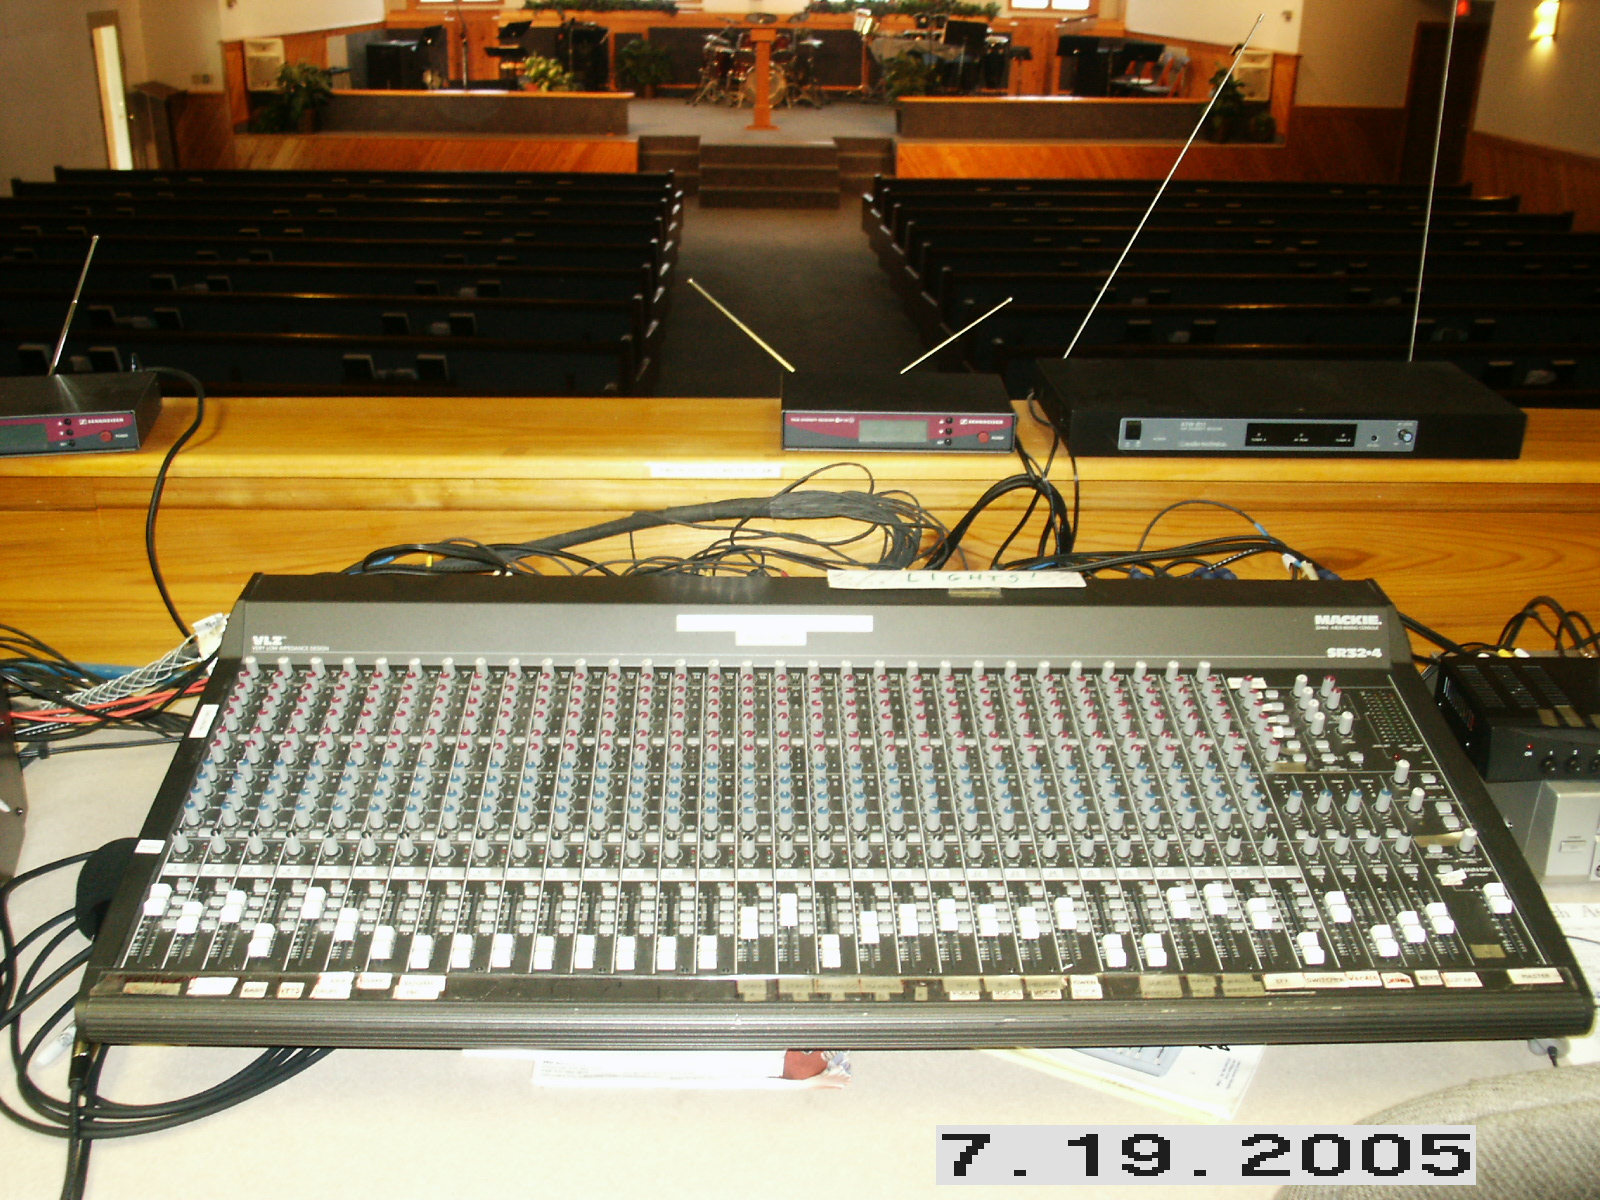 Audio/Video Control Desks Figure 1: A simple table-top desk with wireless receivers on a ledge.